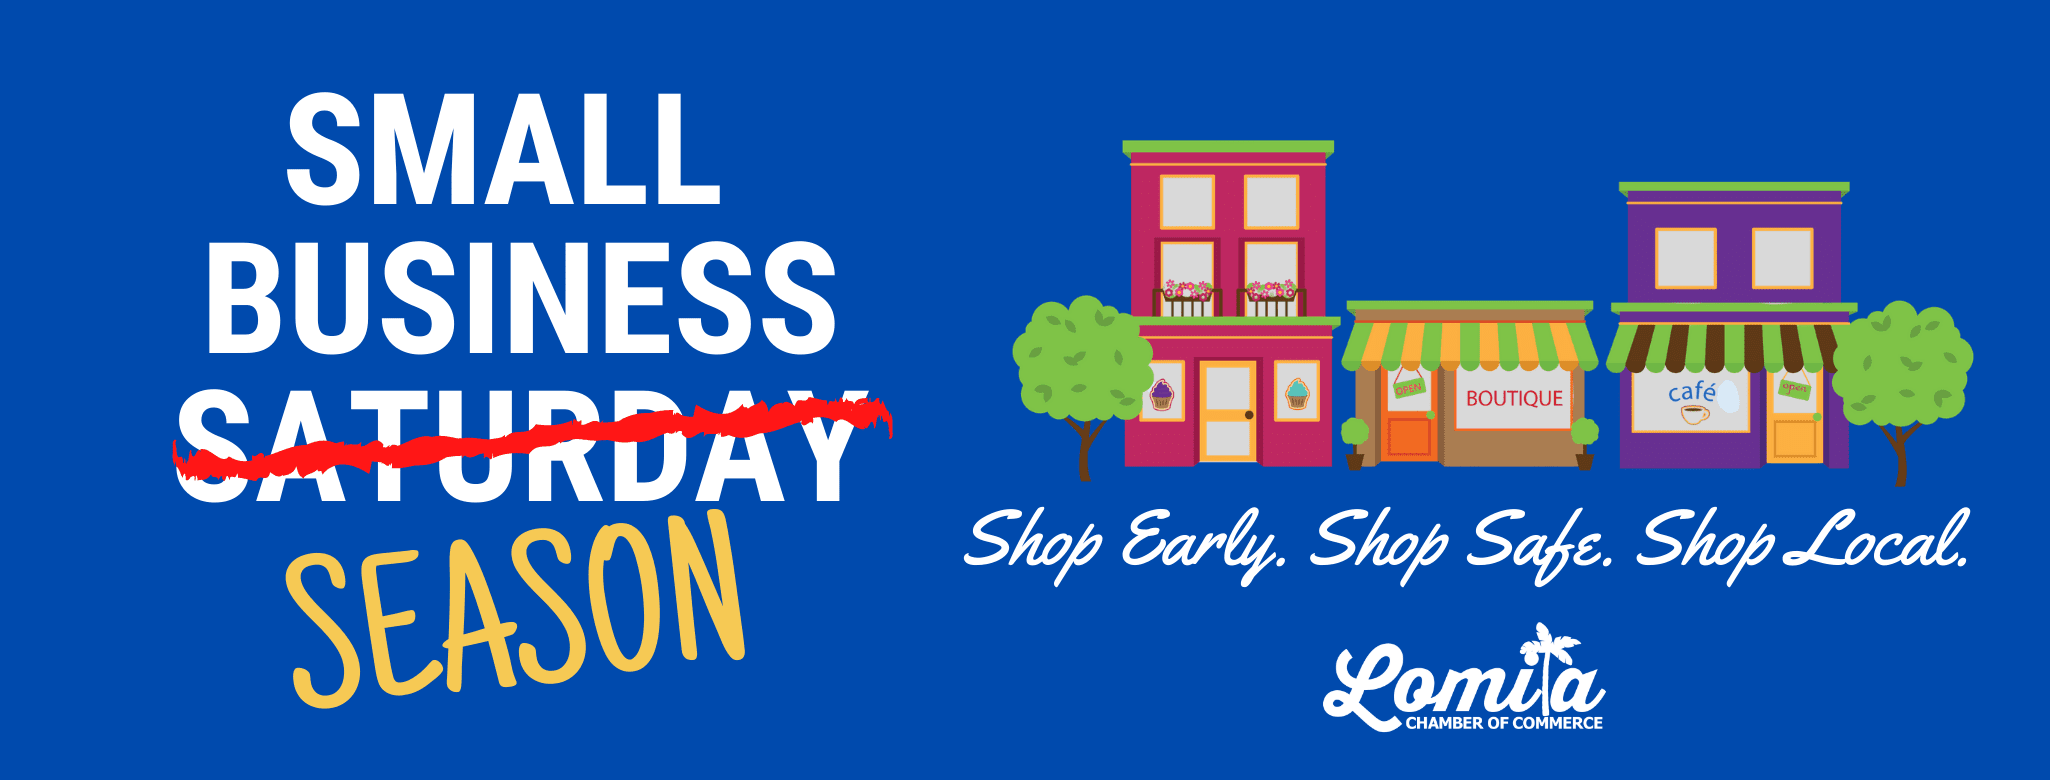 Shop Early. Shop Safe. Shop Local.